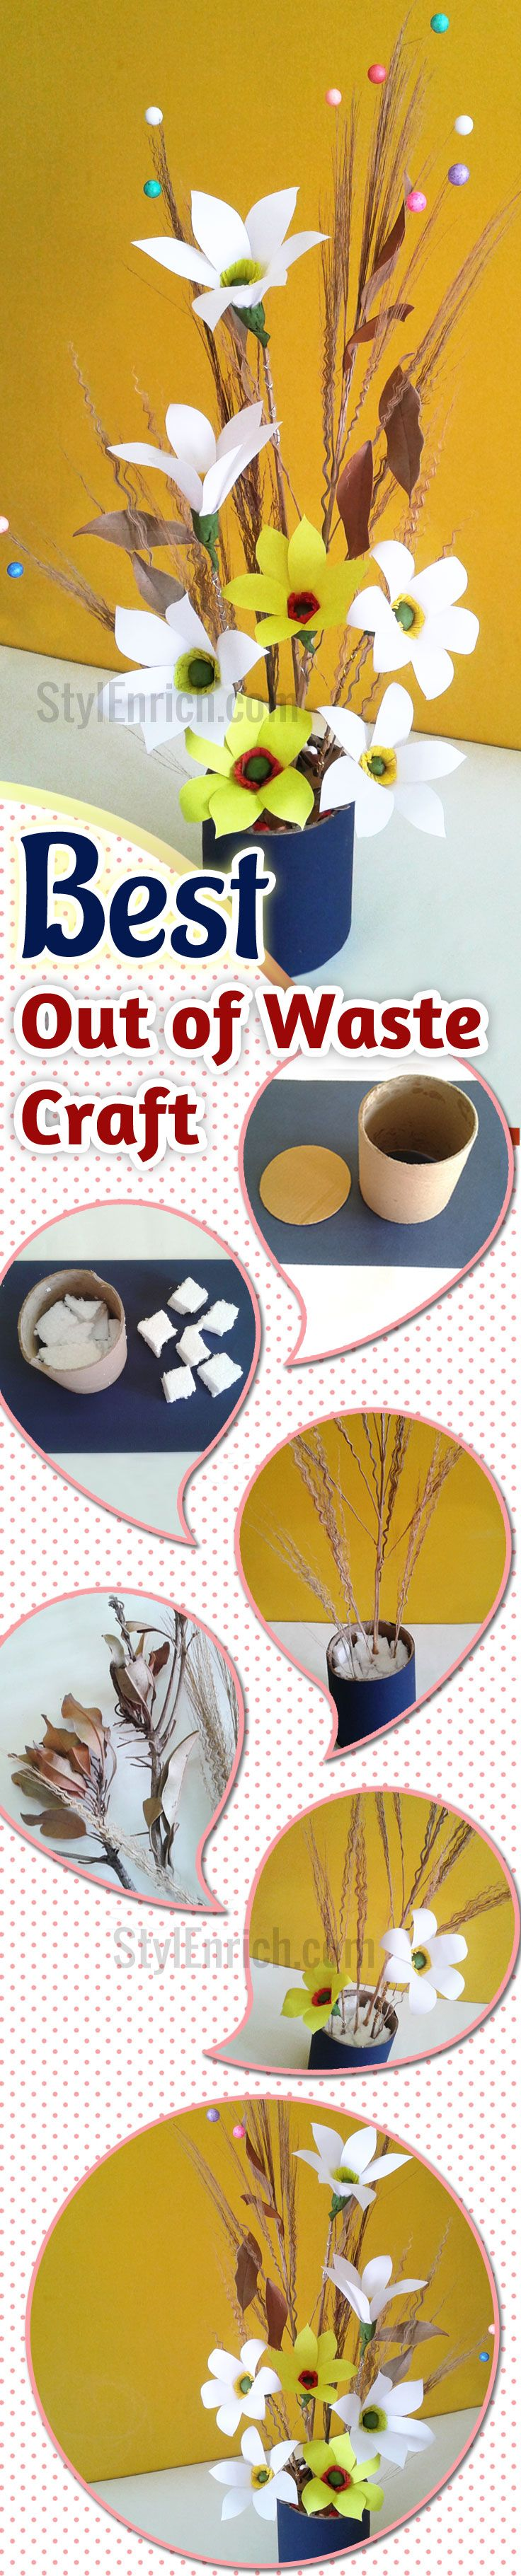 49 best images about best out of waste on pinterest for Things out of waste